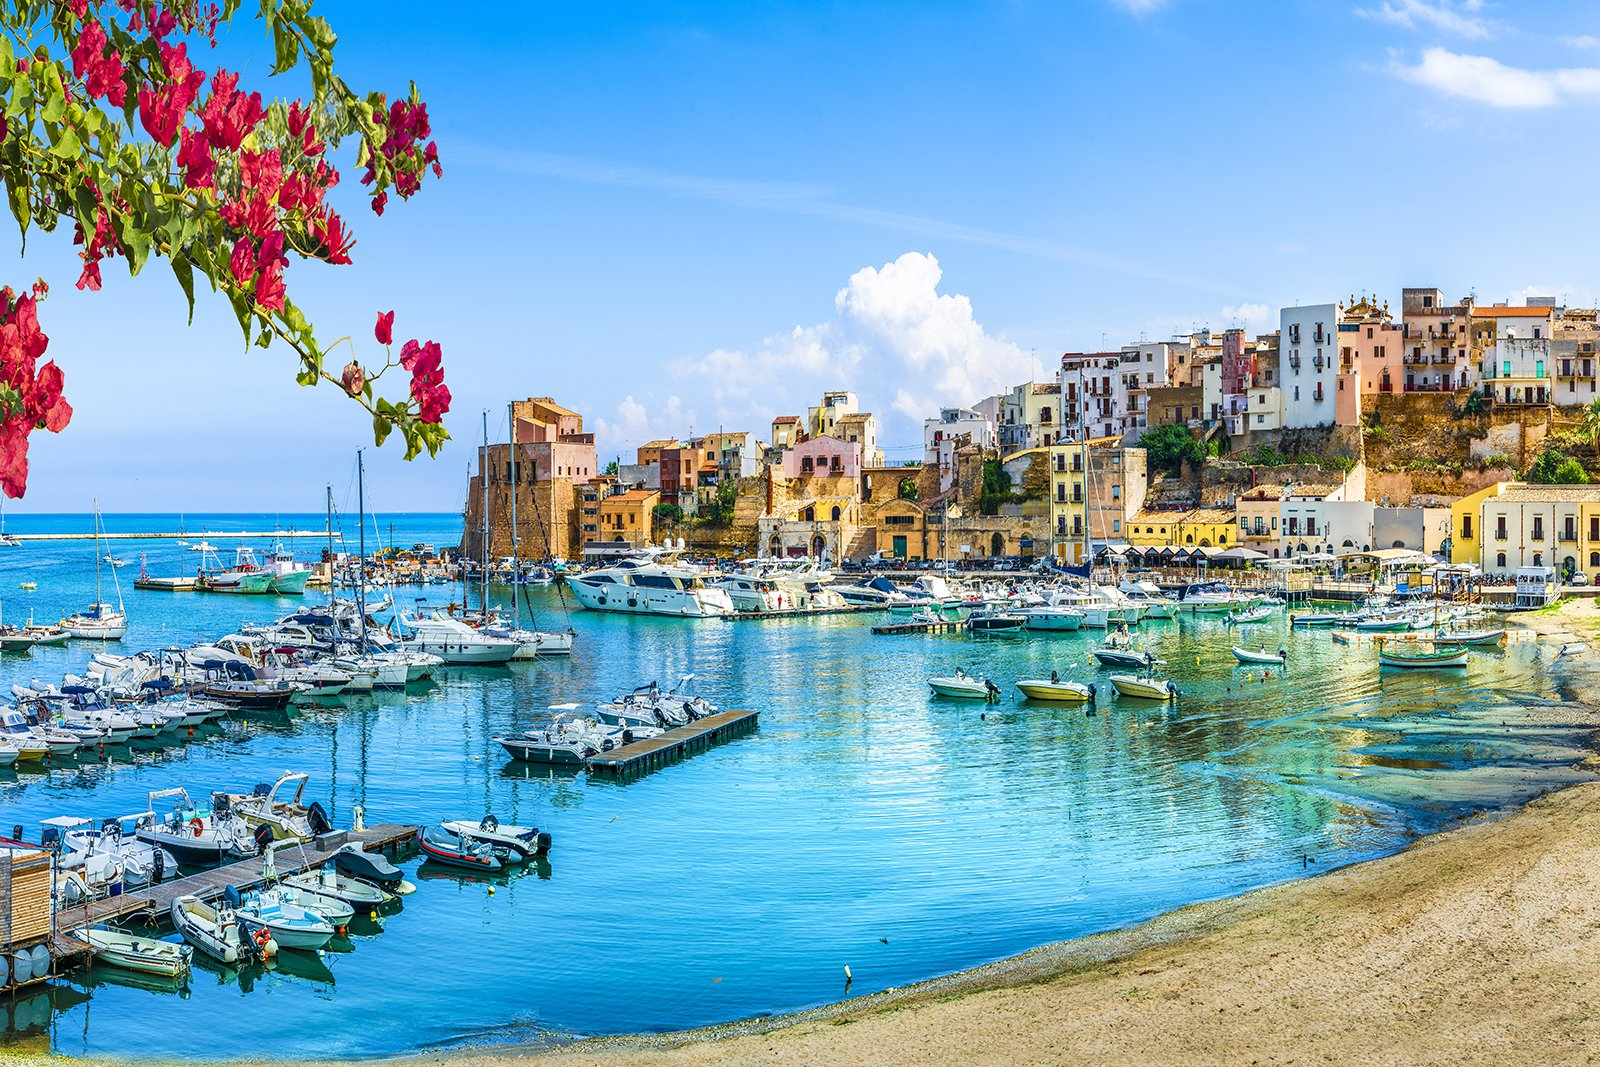 Sicily Italy landscape with water and homes in background